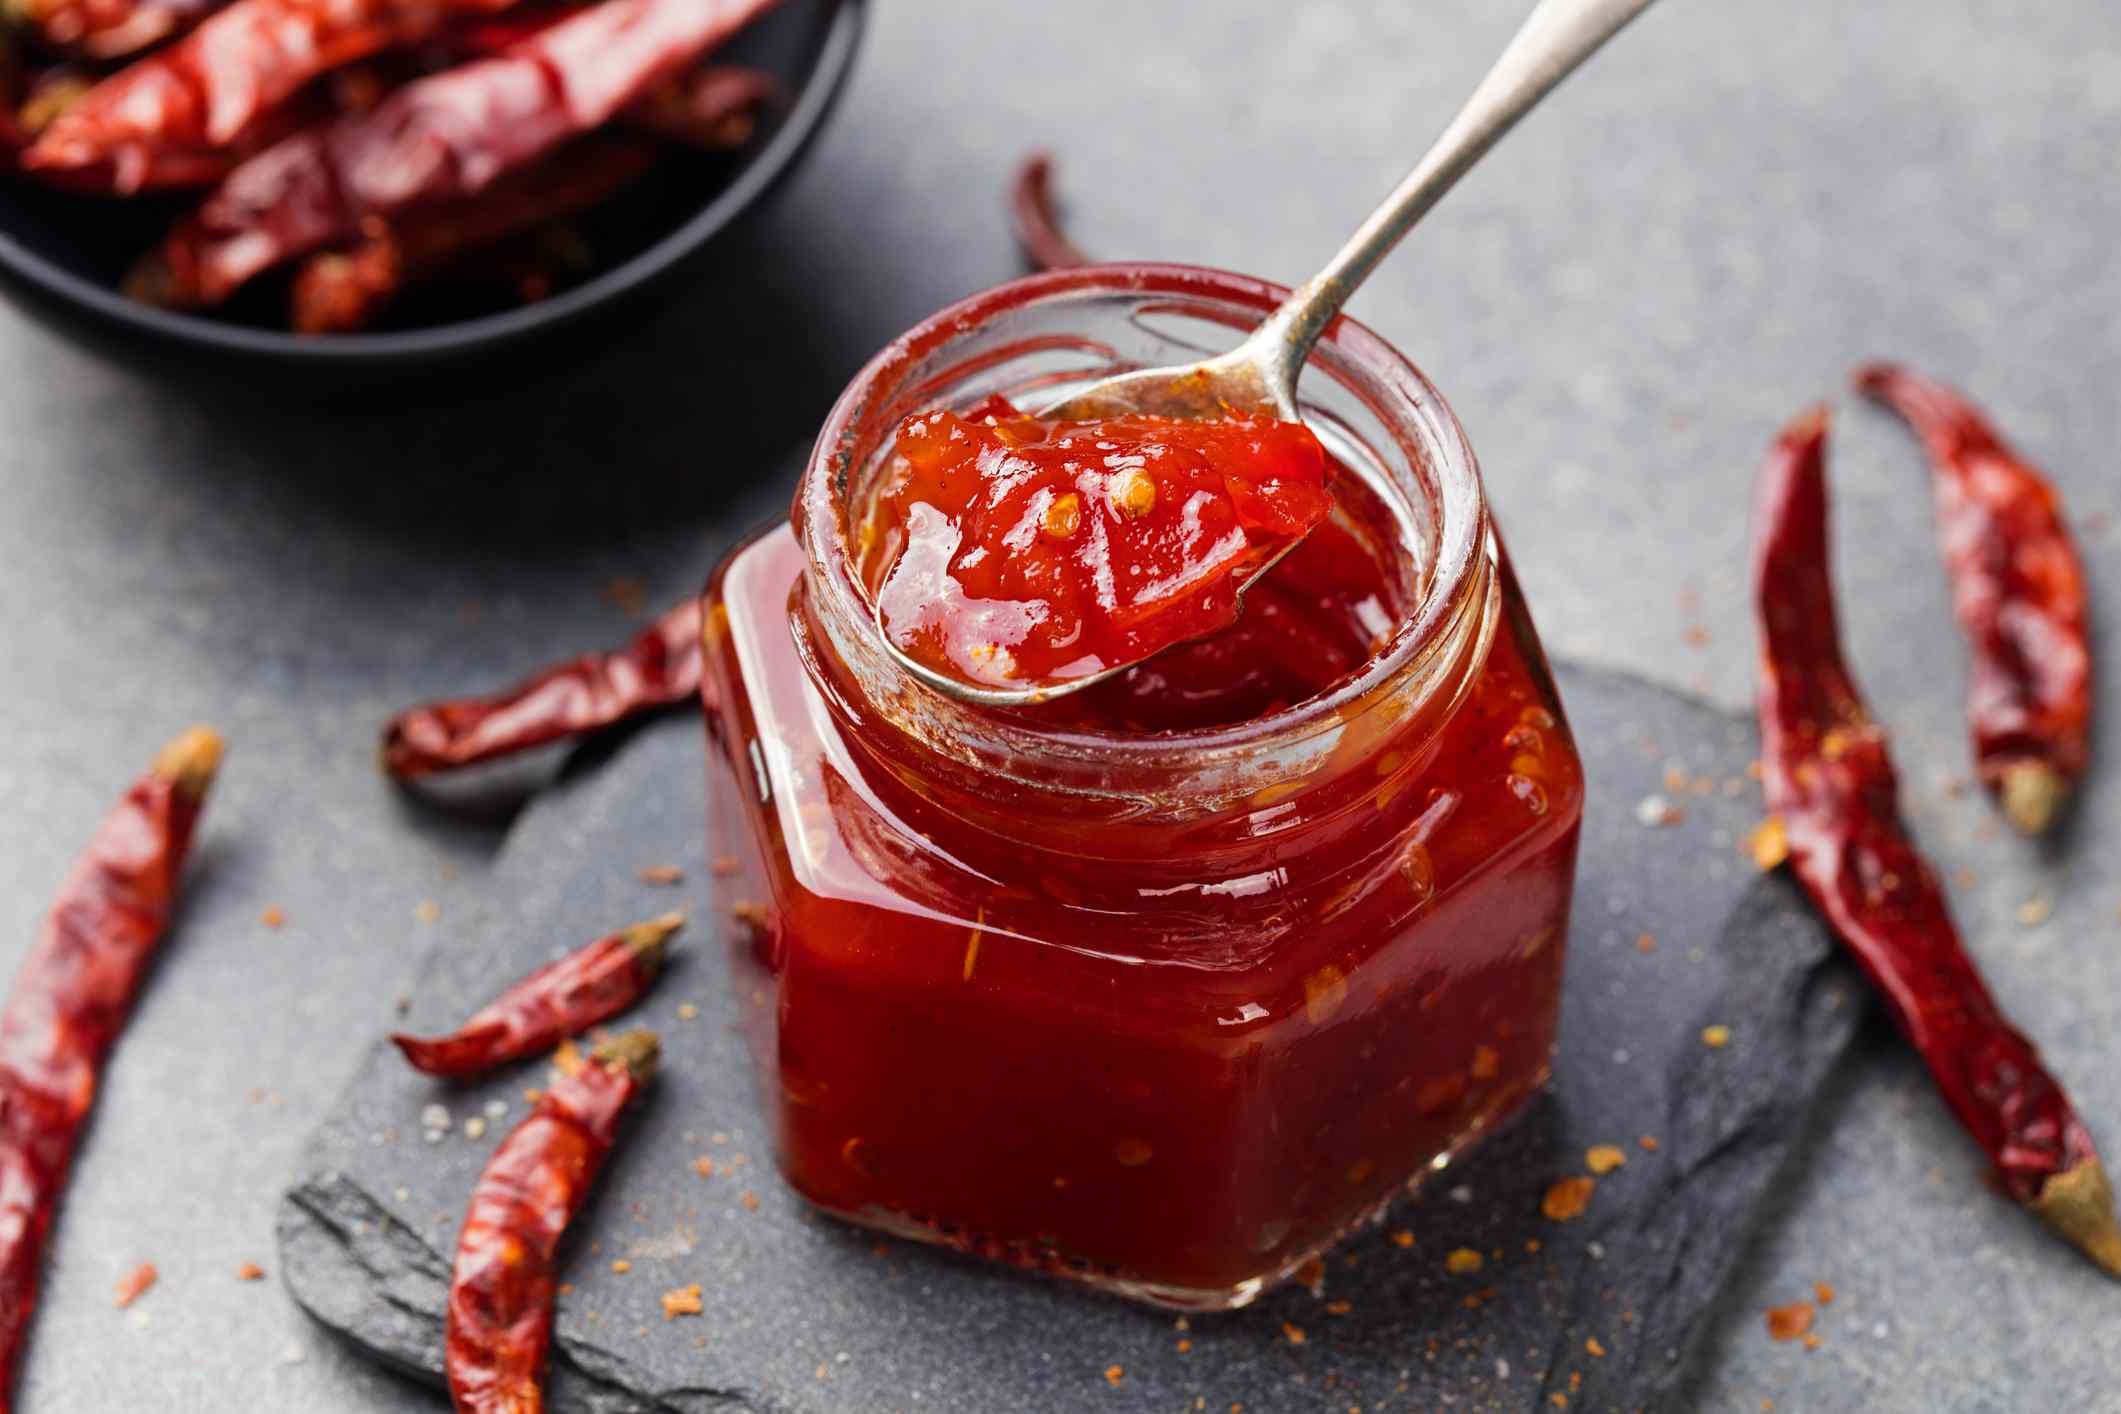 Tomato and chili sauce, jam, confiture in a glass jar